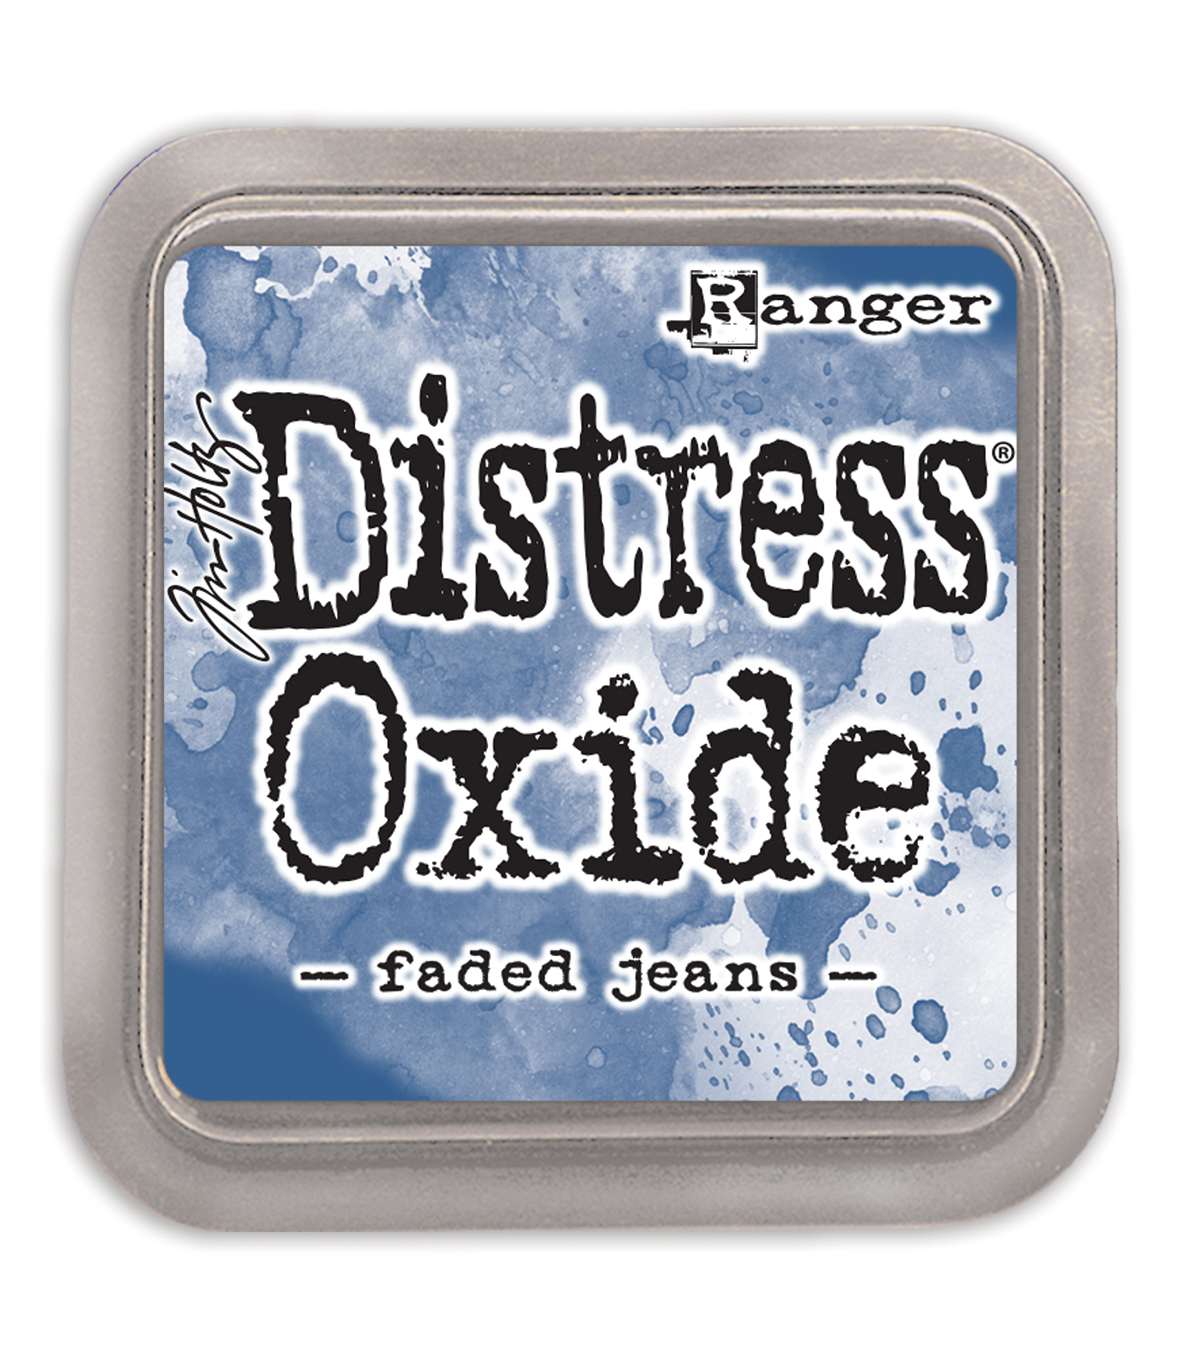 Tim Holtz Distress Oxide Ink Pad, Faded Jeans